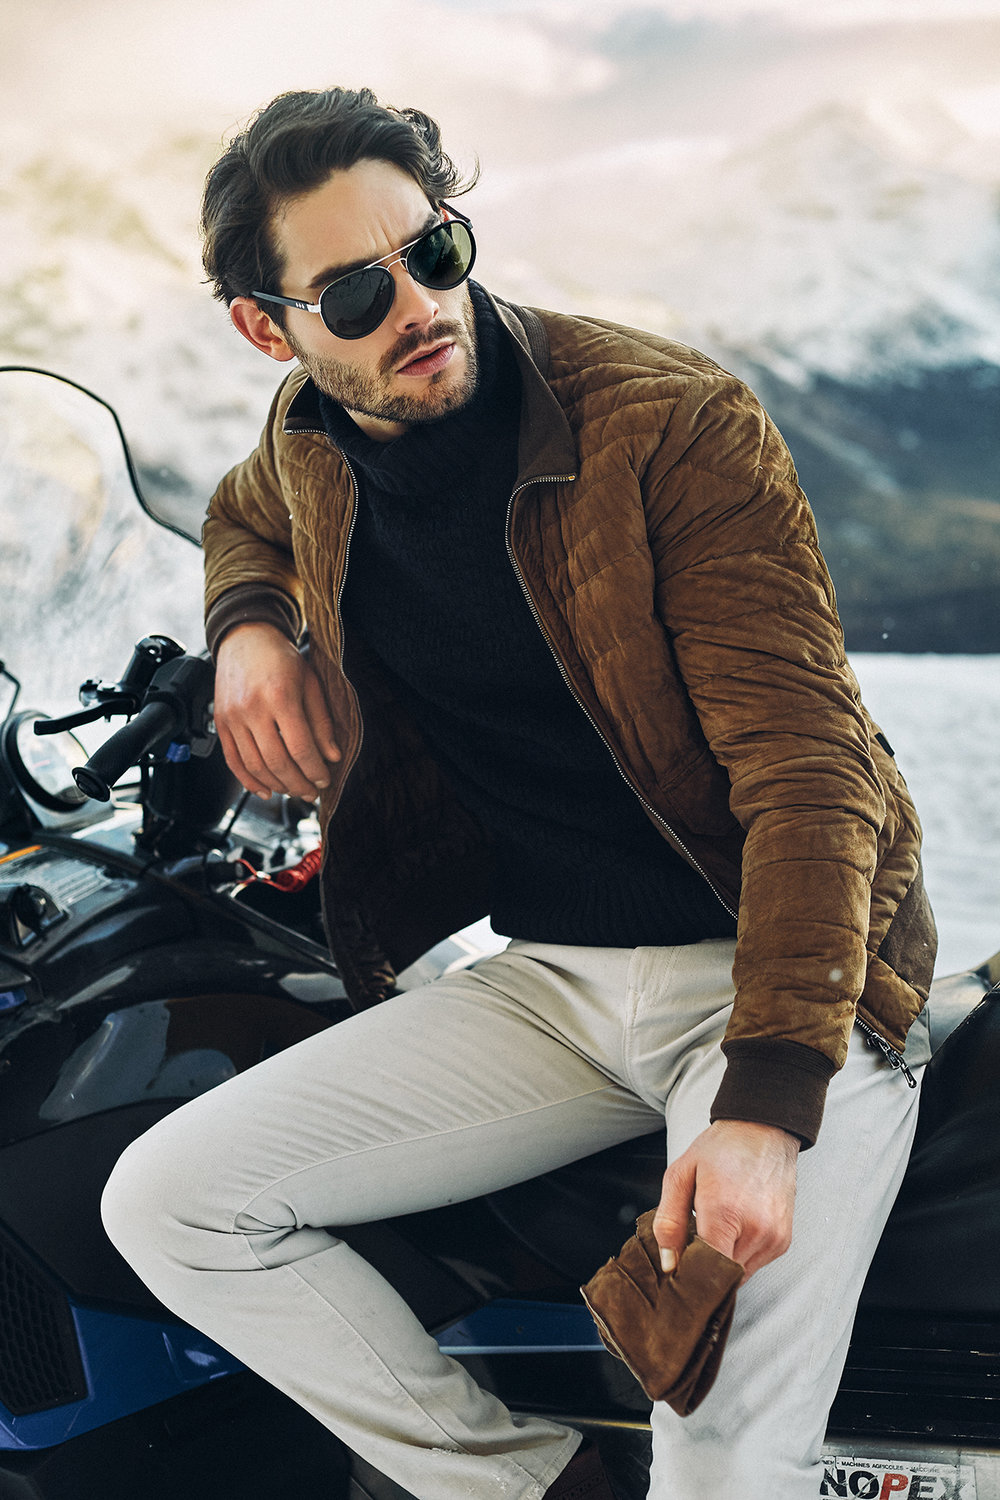 2015128_Gents_Journal_StMoritz1151_Retouched-copy.jpg